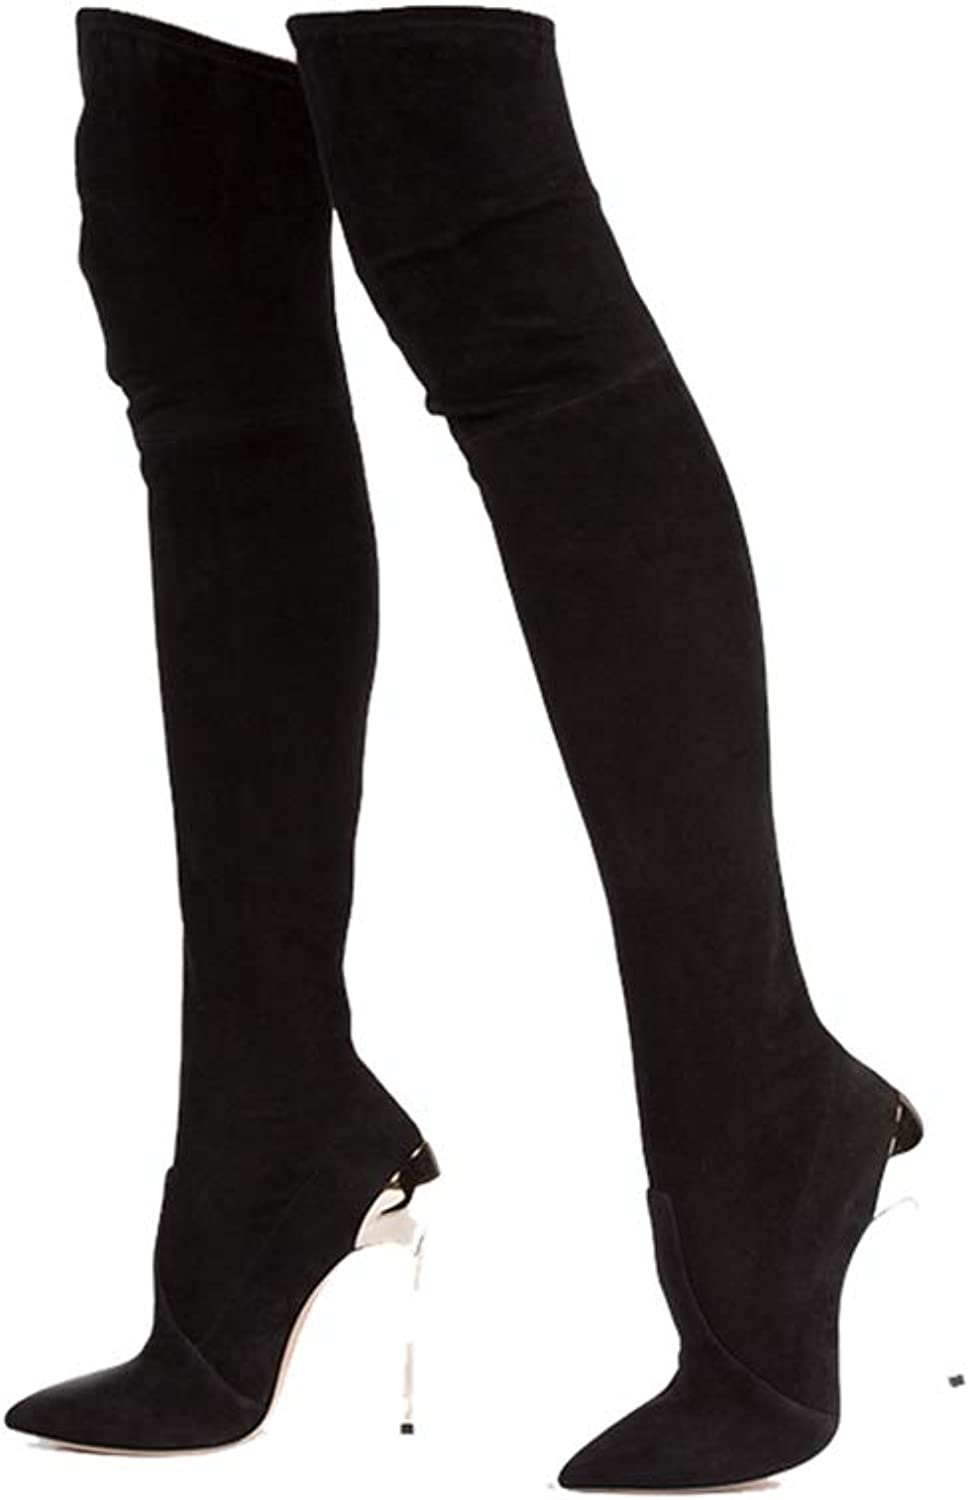 Winter Women Boots Stretch Faux Suede Slim Thigh High Boots Fashion Sexy Over The Knee Boots High Heels shoes